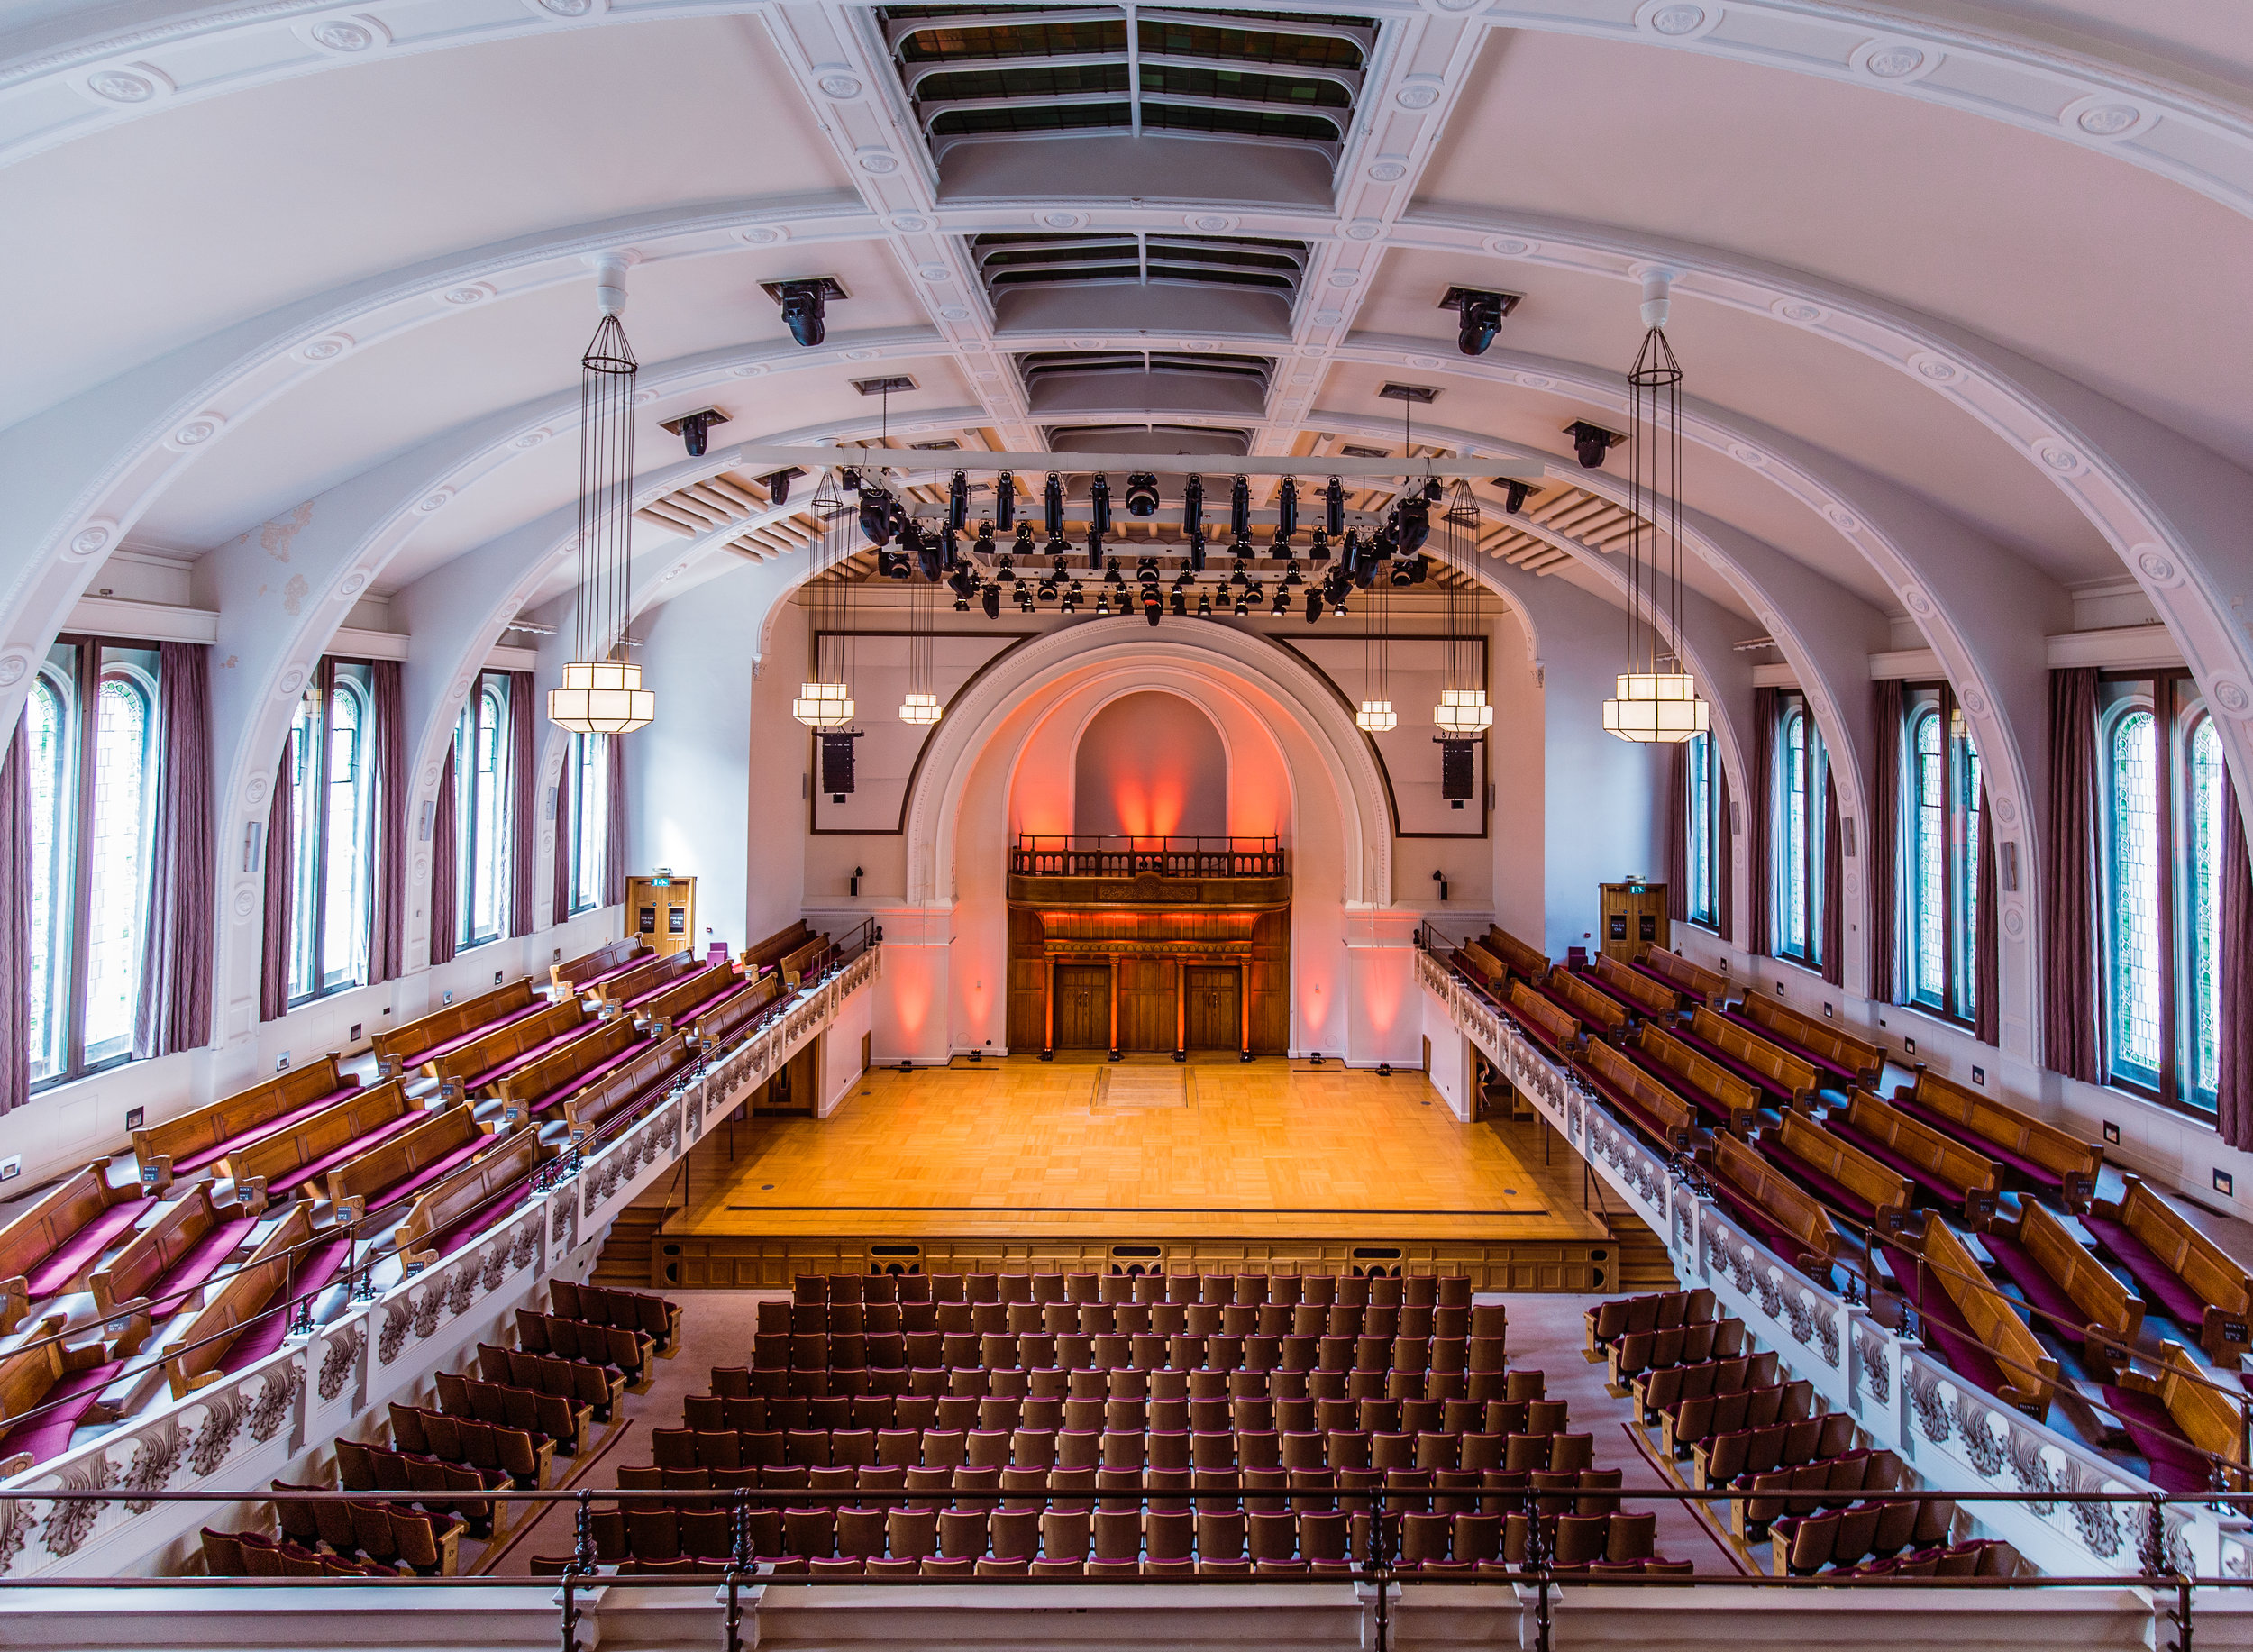 cadogan-hall-auditorium_24688897108_o.jpg